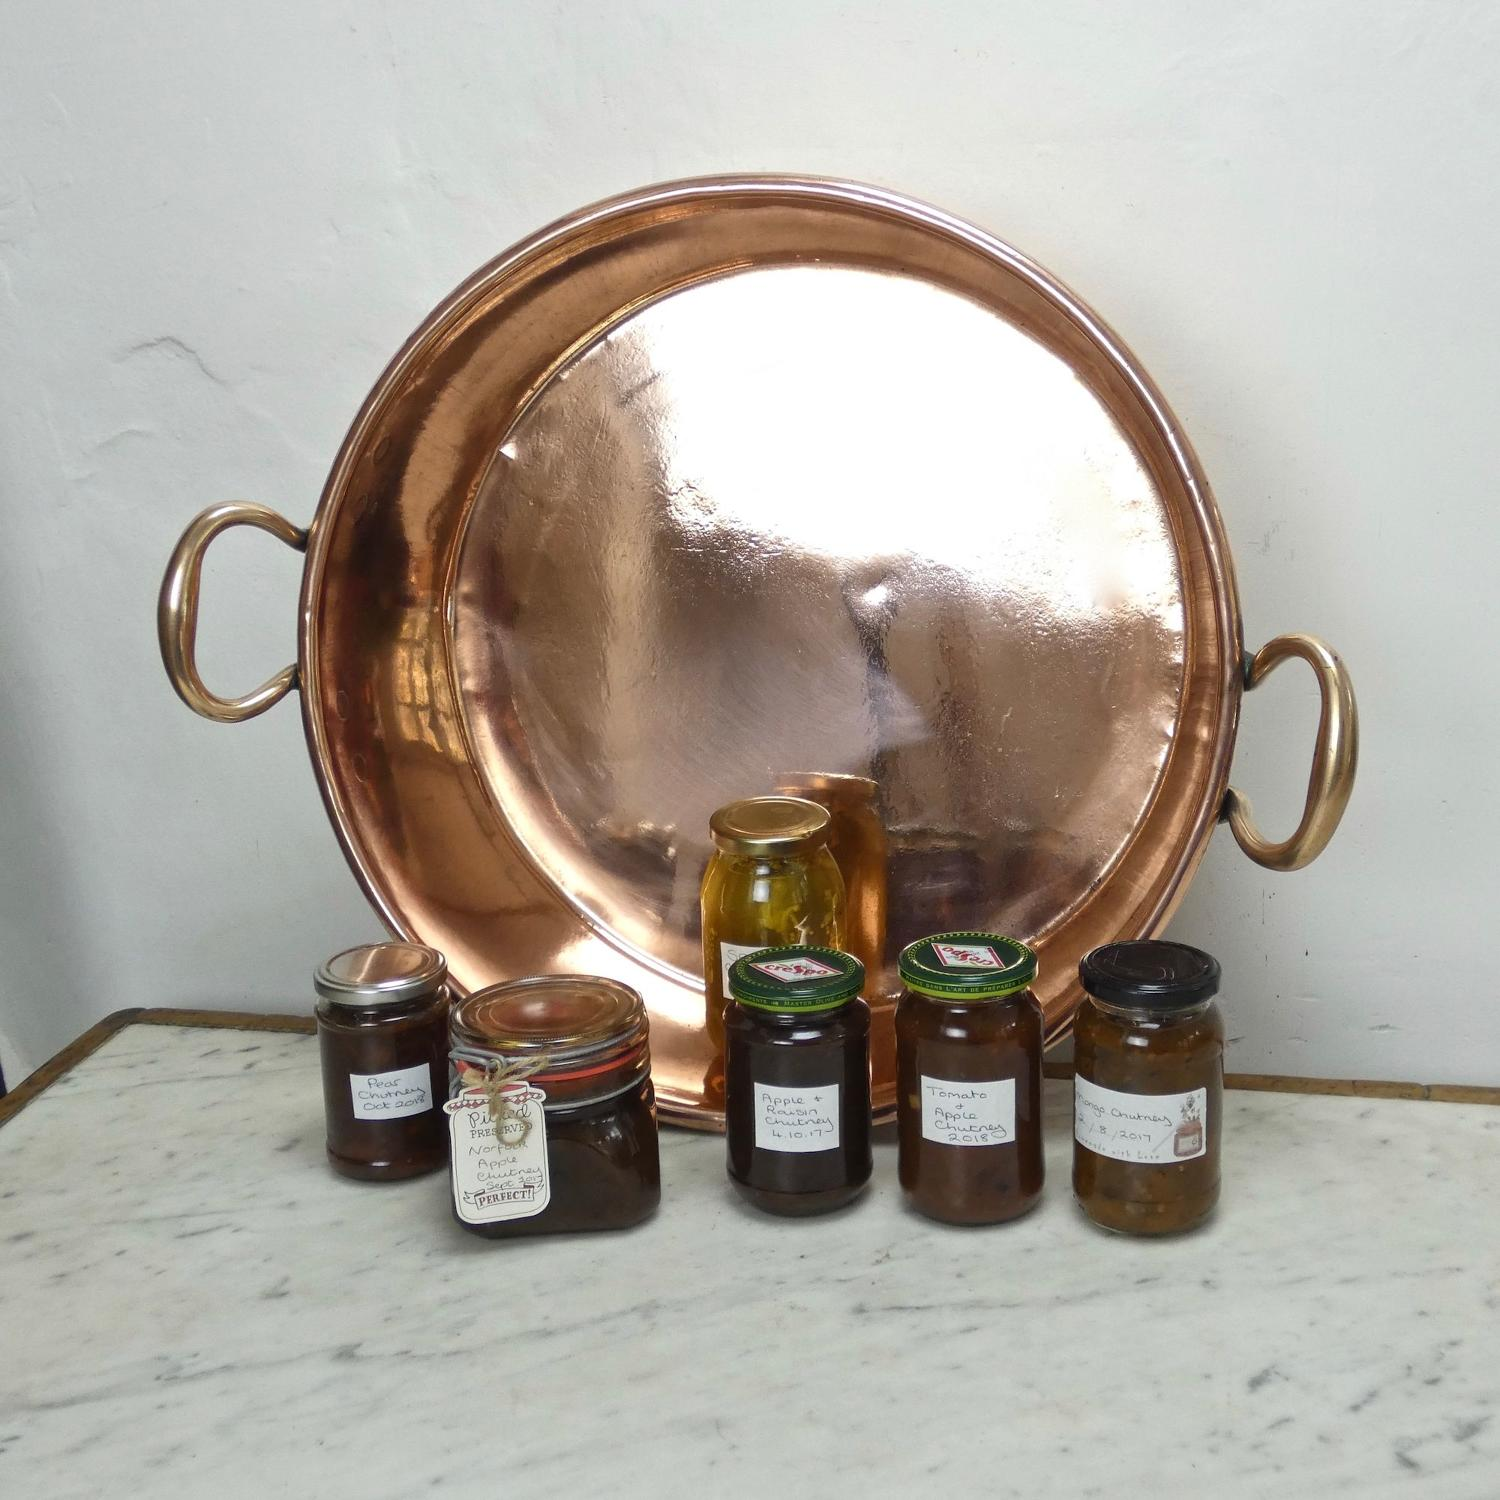 Large English preserve pan